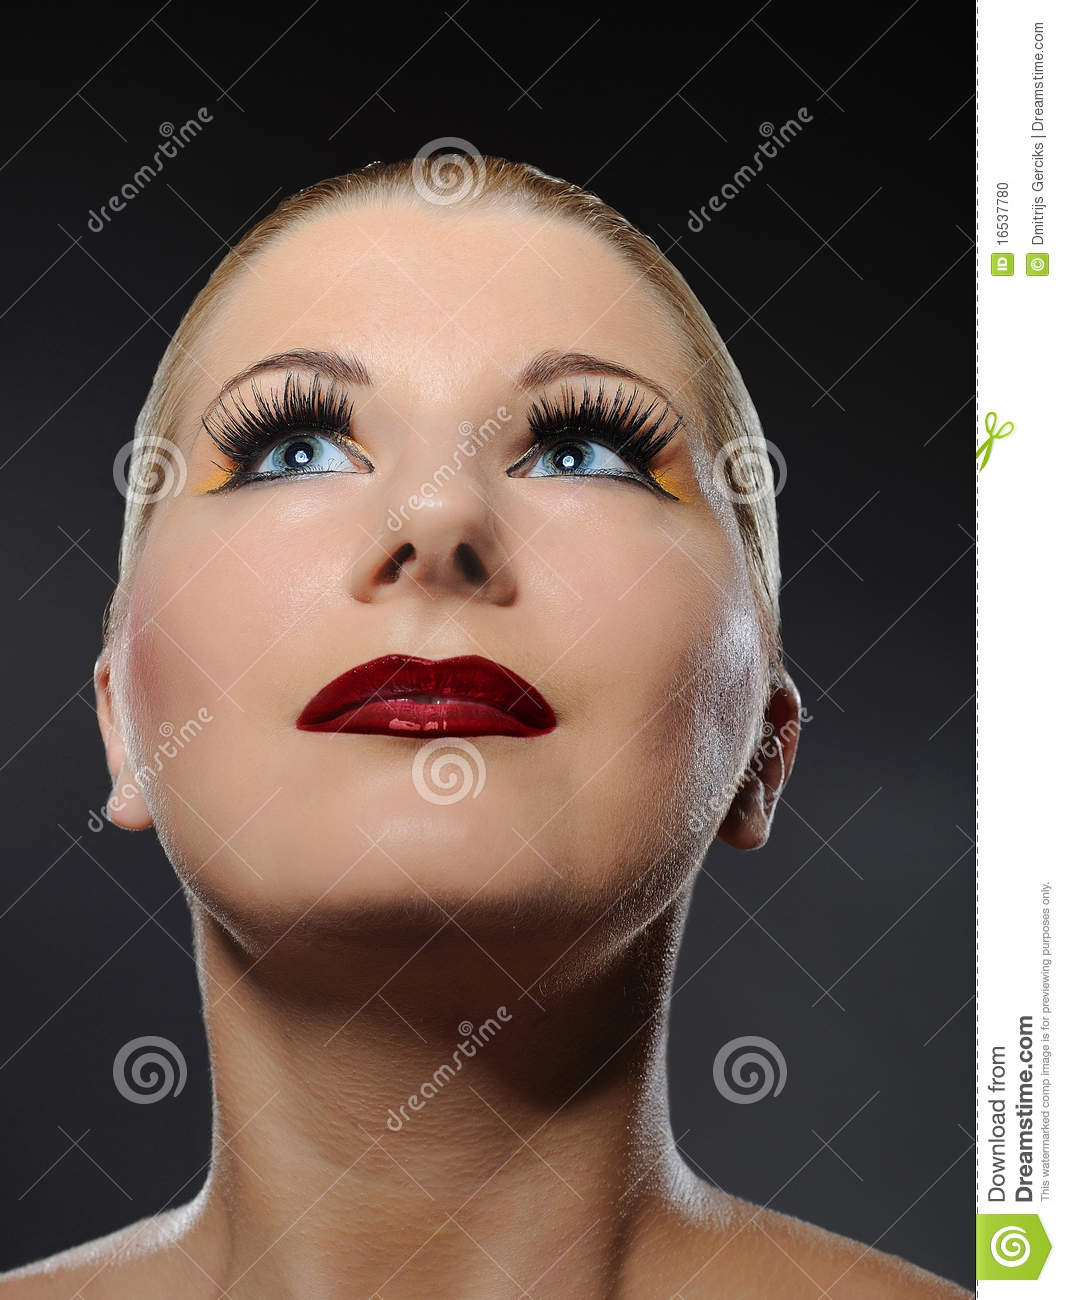 Fall Fashion Makeup Trend Stock Photo. Image Of Brows